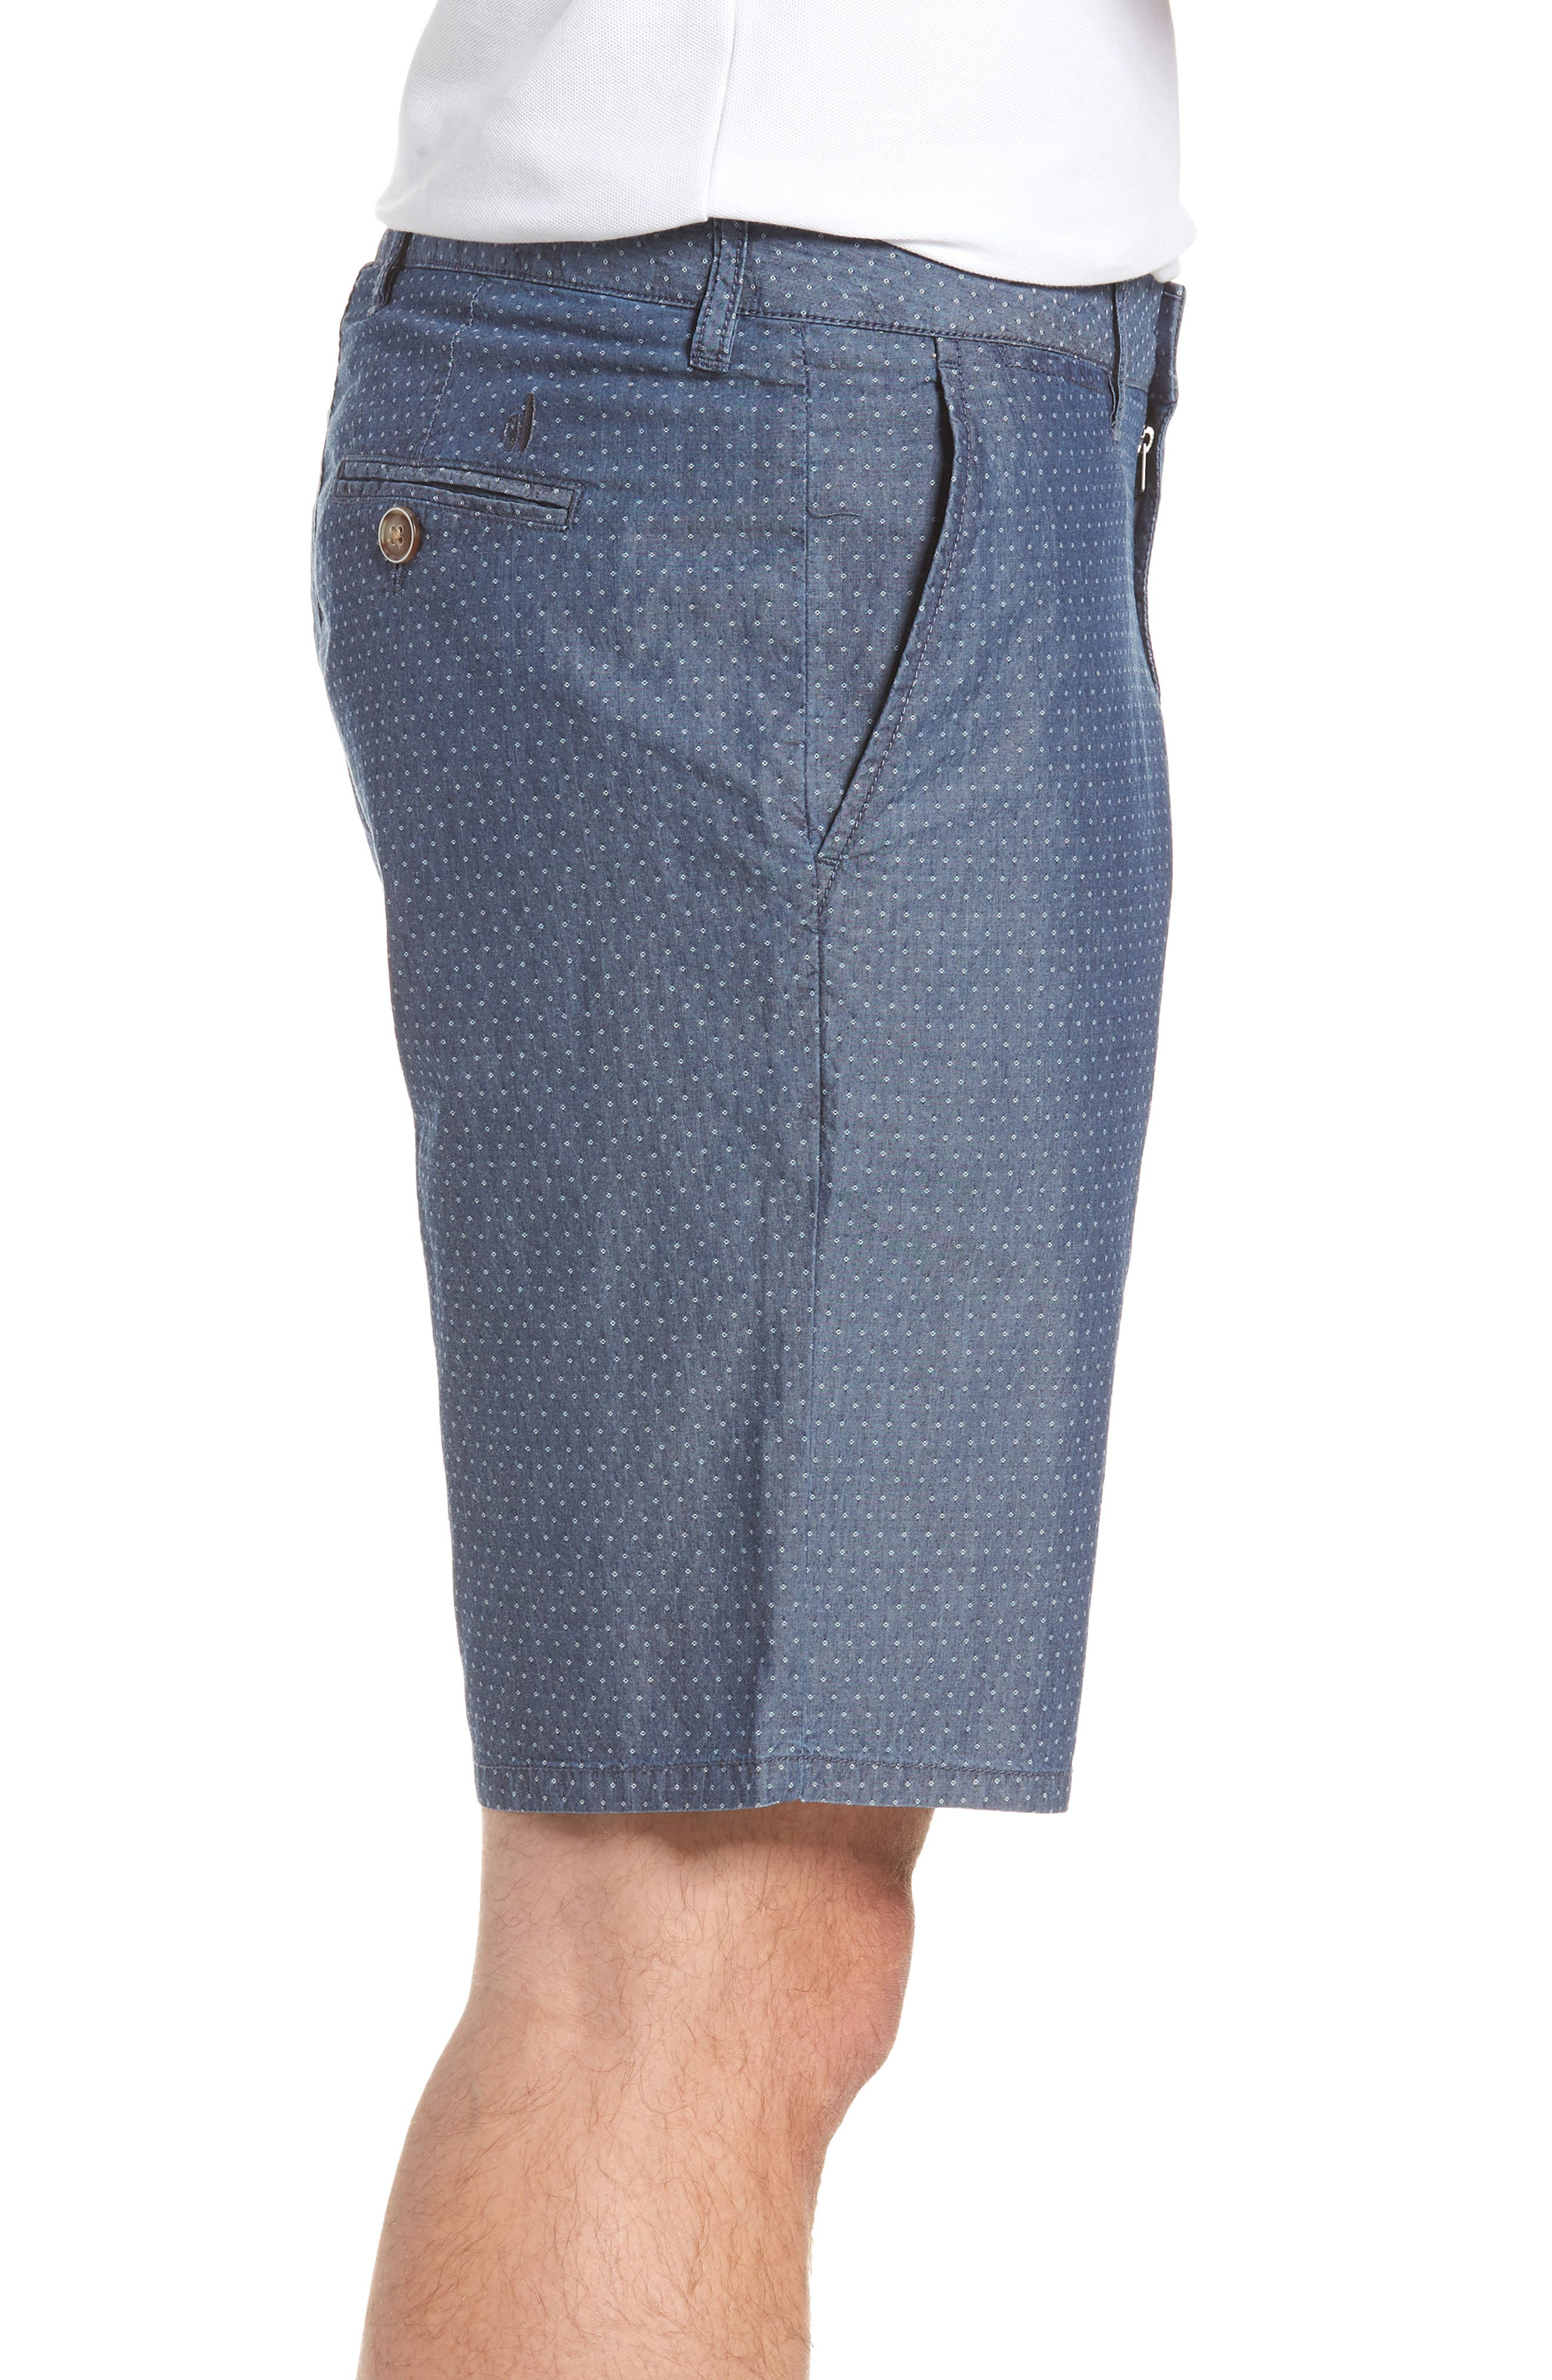 Oliver Classic Fit Chambray Jacquard Shorts,                             Alternate thumbnail 5, color,                             Chambray